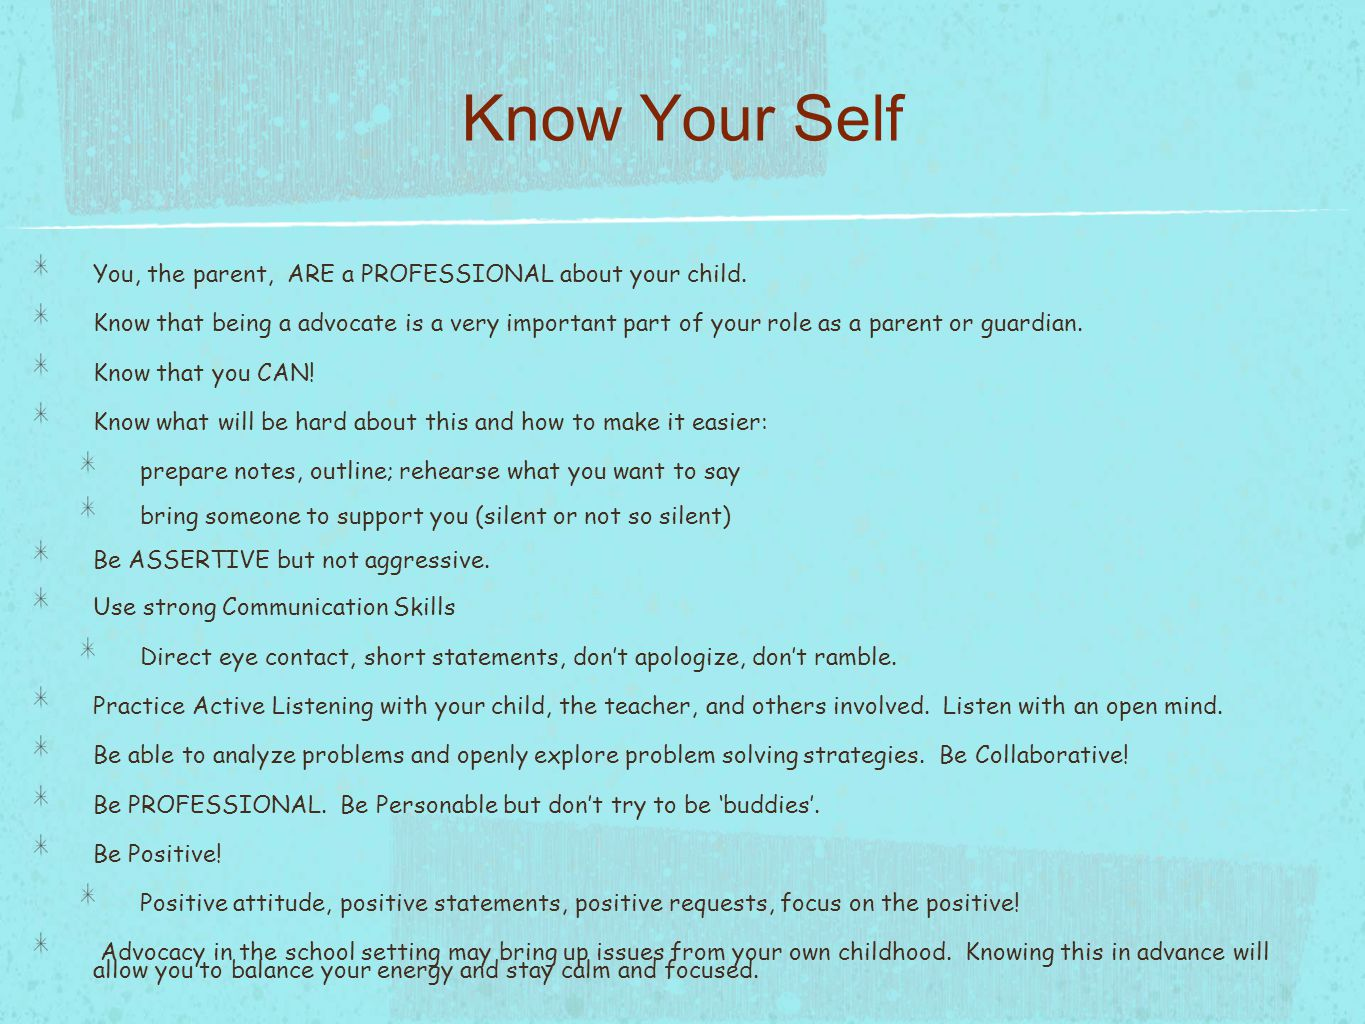 Know Your Self Your child is a student / individual first, and do not allow them to focus on deficits.